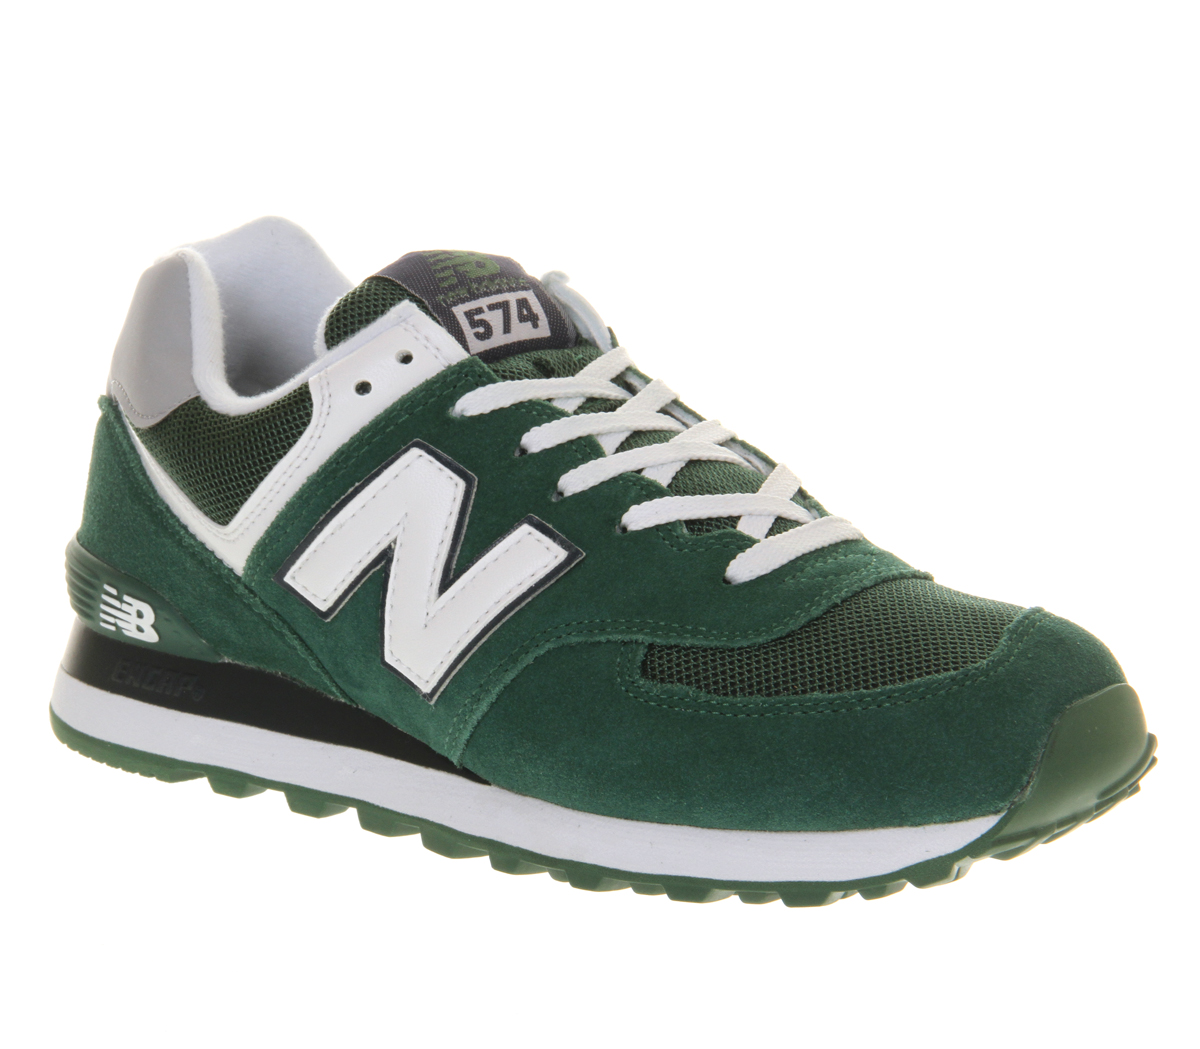 mens new balance new balance m574 green white trainers shoes ebay. Black Bedroom Furniture Sets. Home Design Ideas